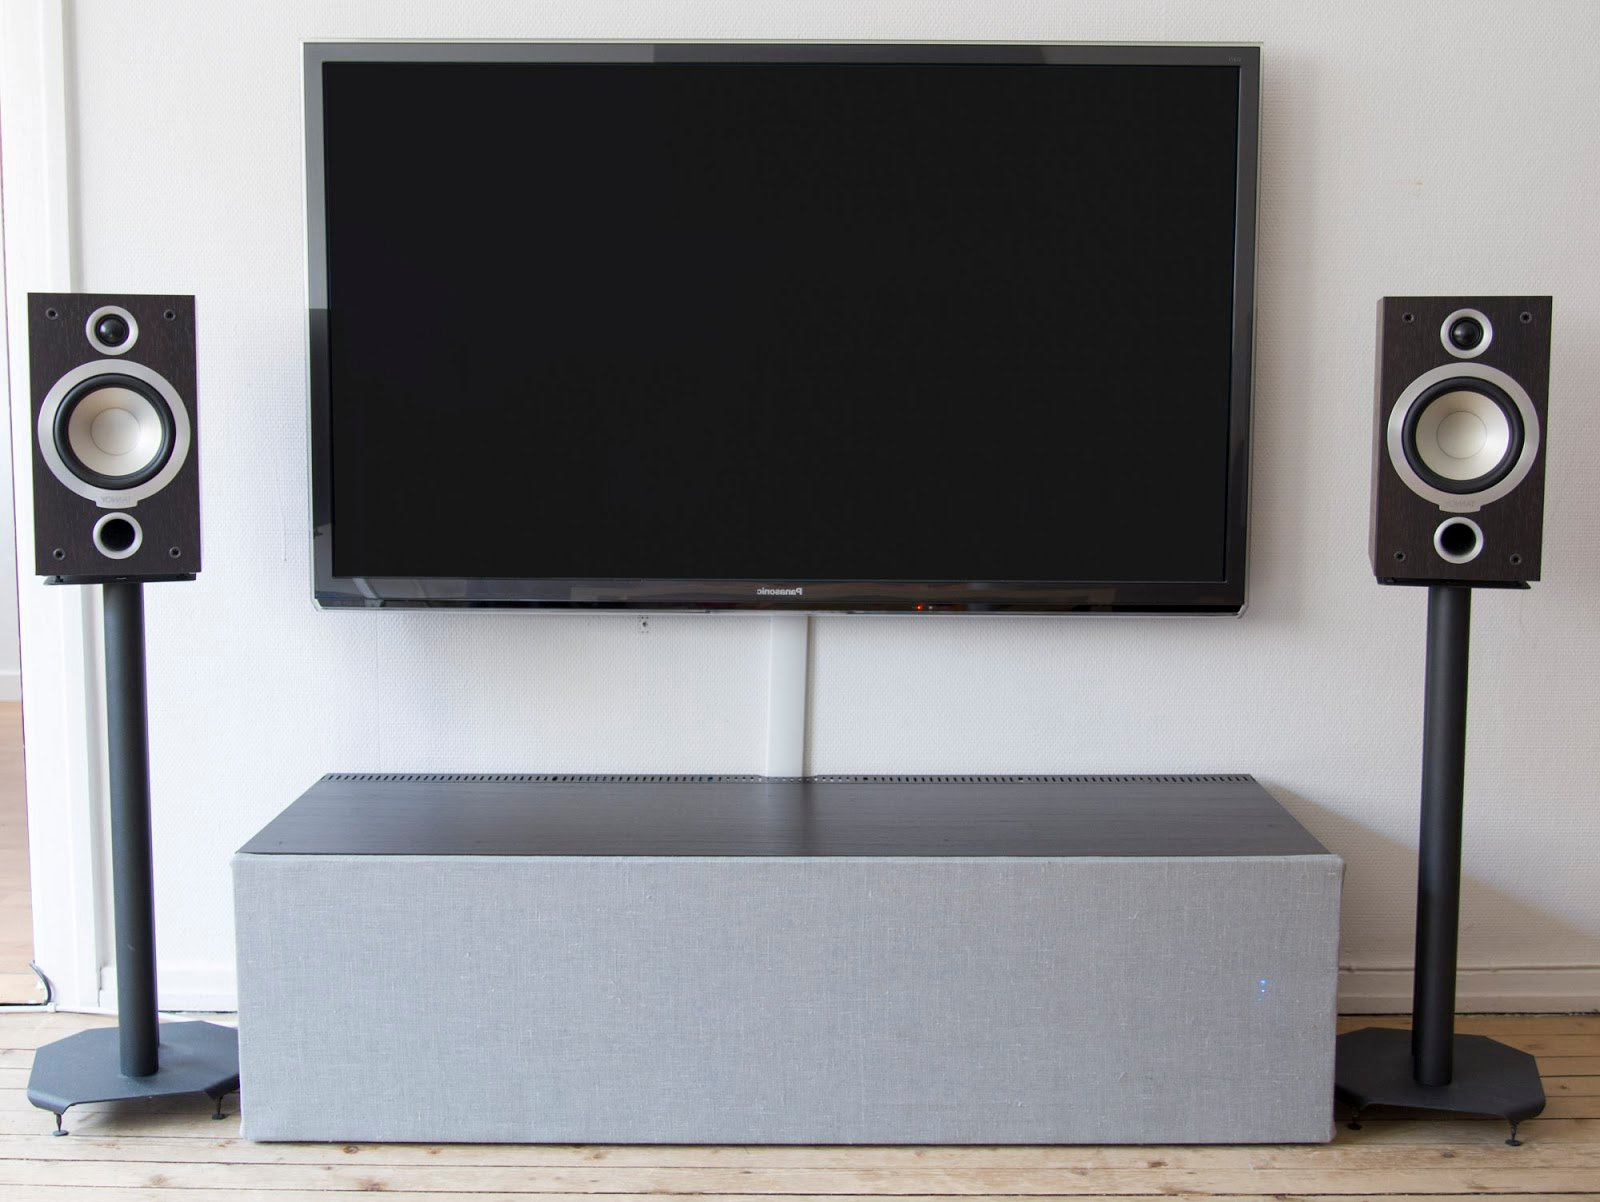 Fashionable Rectangular Tv Stands For Double Glass Doors On Ikea Tv Tv Stands Ikea For Rectangle Black (View 4 of 20)